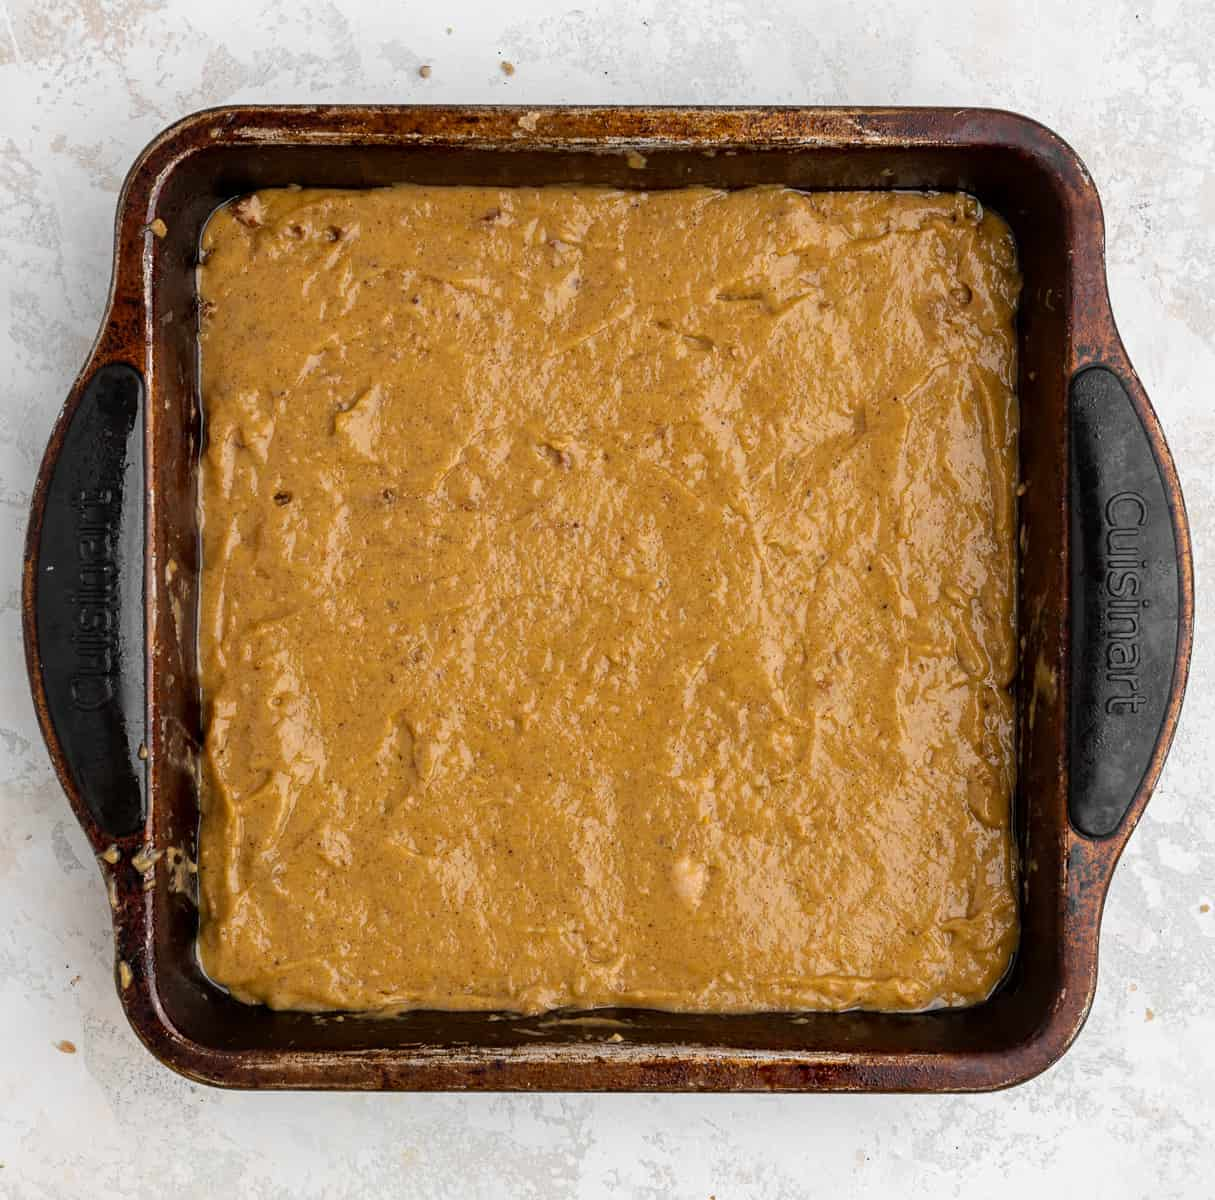 pumpkin coffee cake in a greased 8x8 baking dish, unbaked.